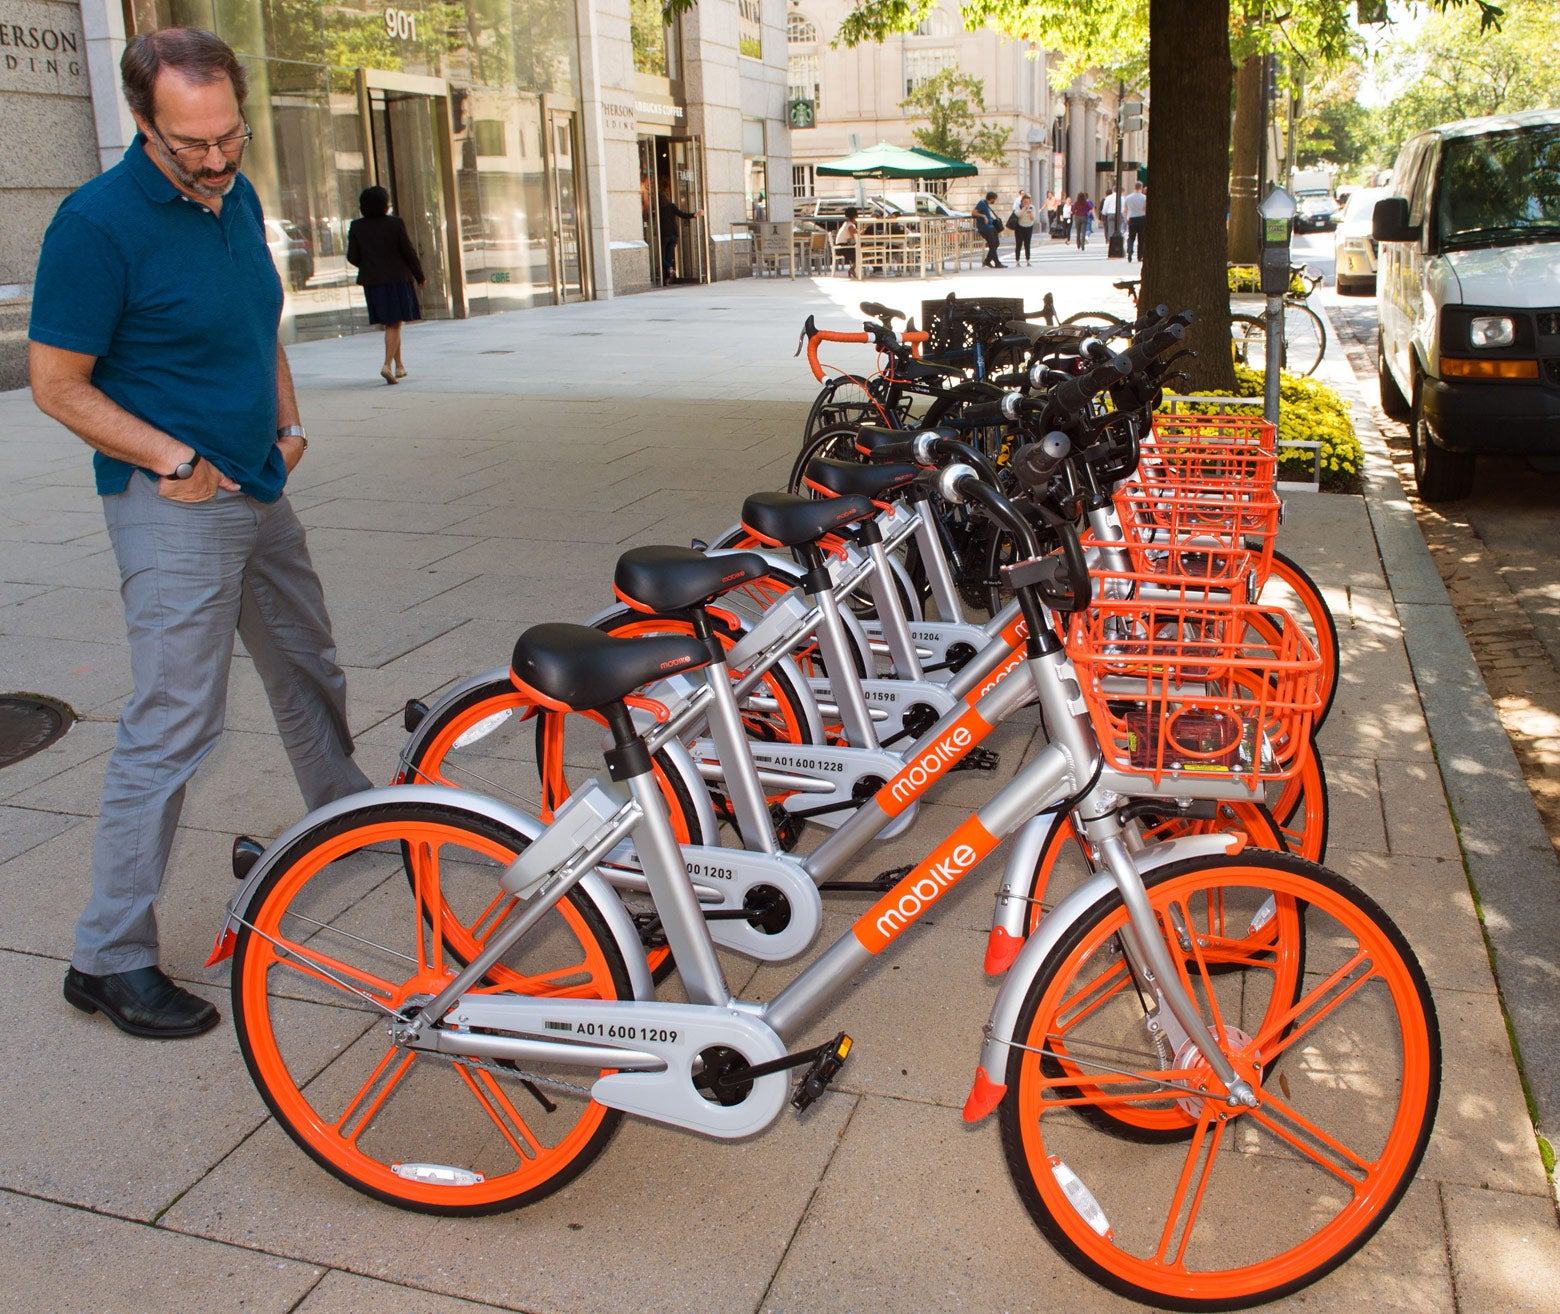 A man looks over Mobikes on the streets of Washington on Sept. 20.